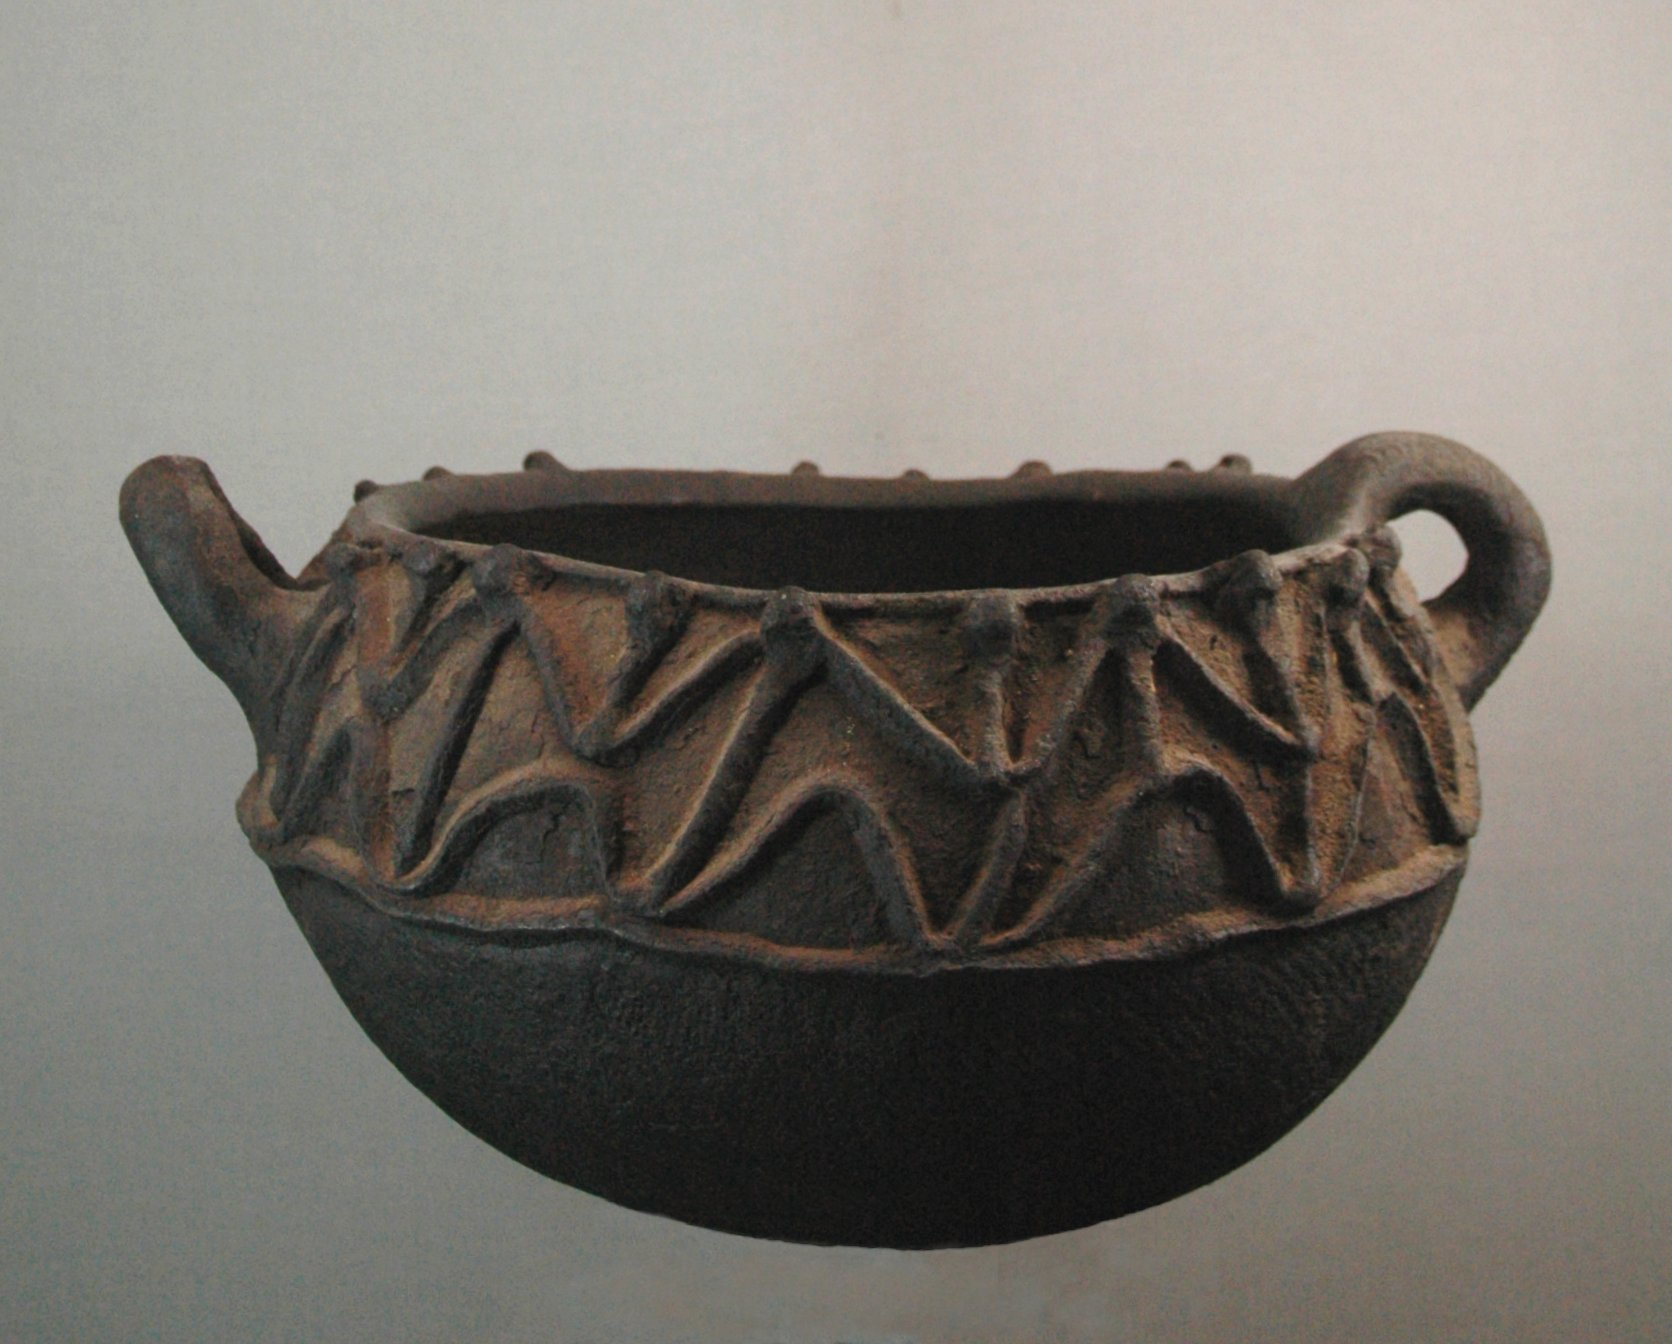 Tikar bowl for palm wine